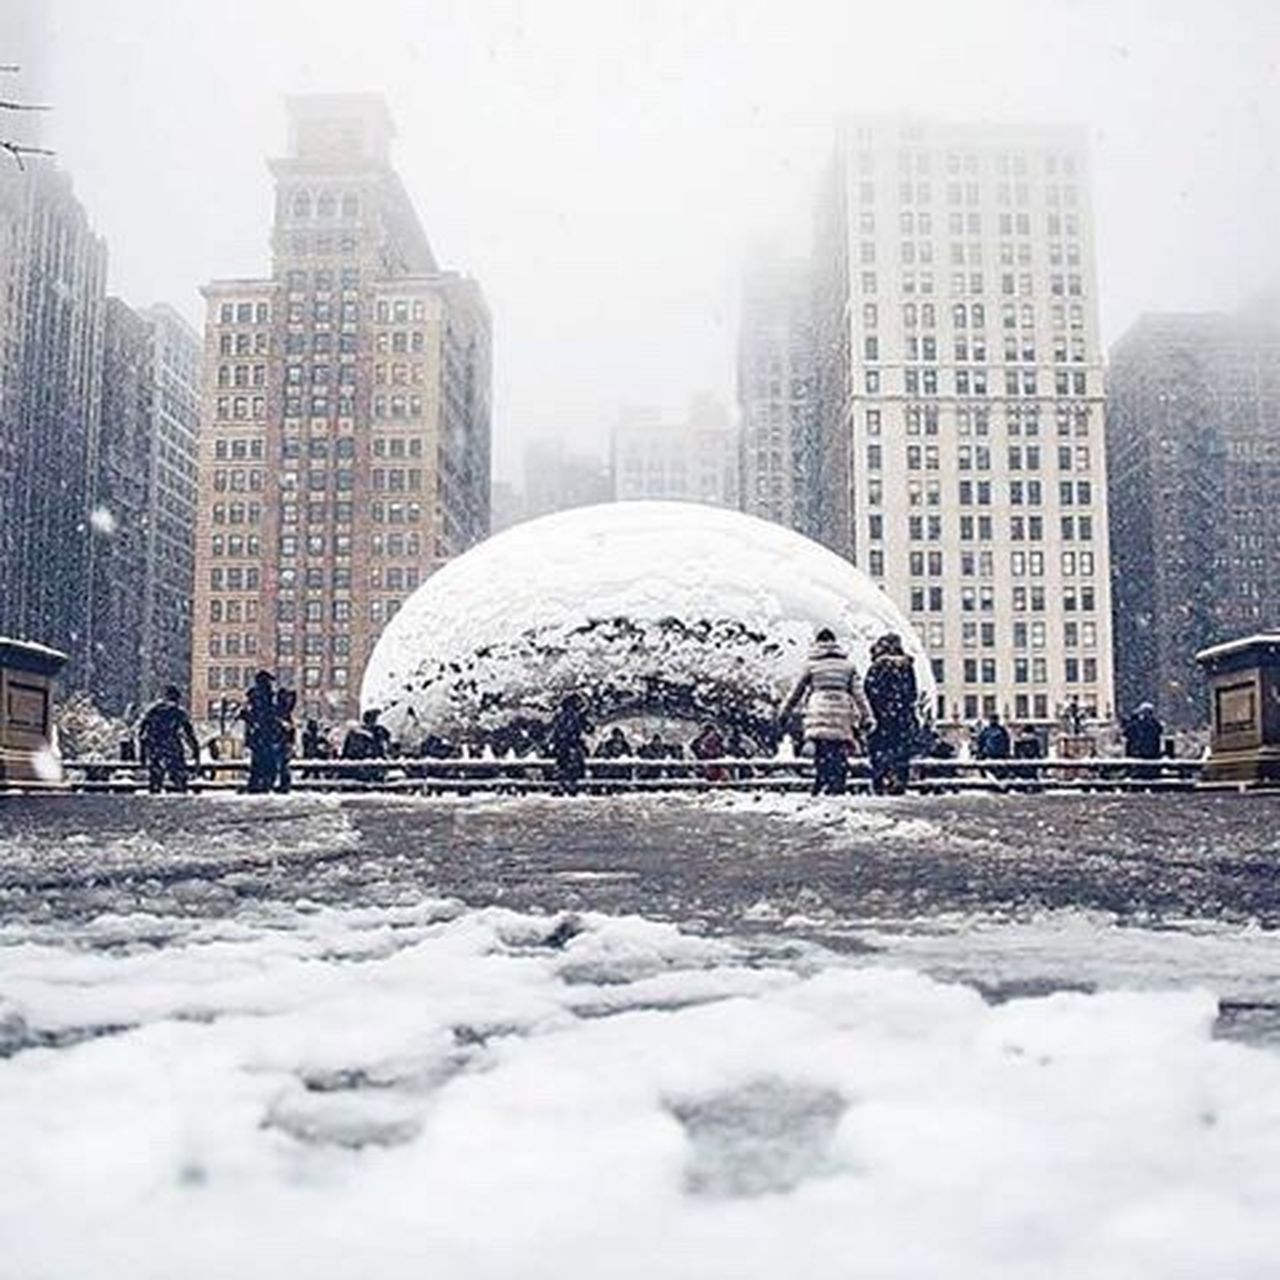 city, architecture, building exterior, built structure, skyscraper, weather, city life, winter, outdoors, urban skyline, cityscape, modern, day, snow, snowing, people, sky, adult